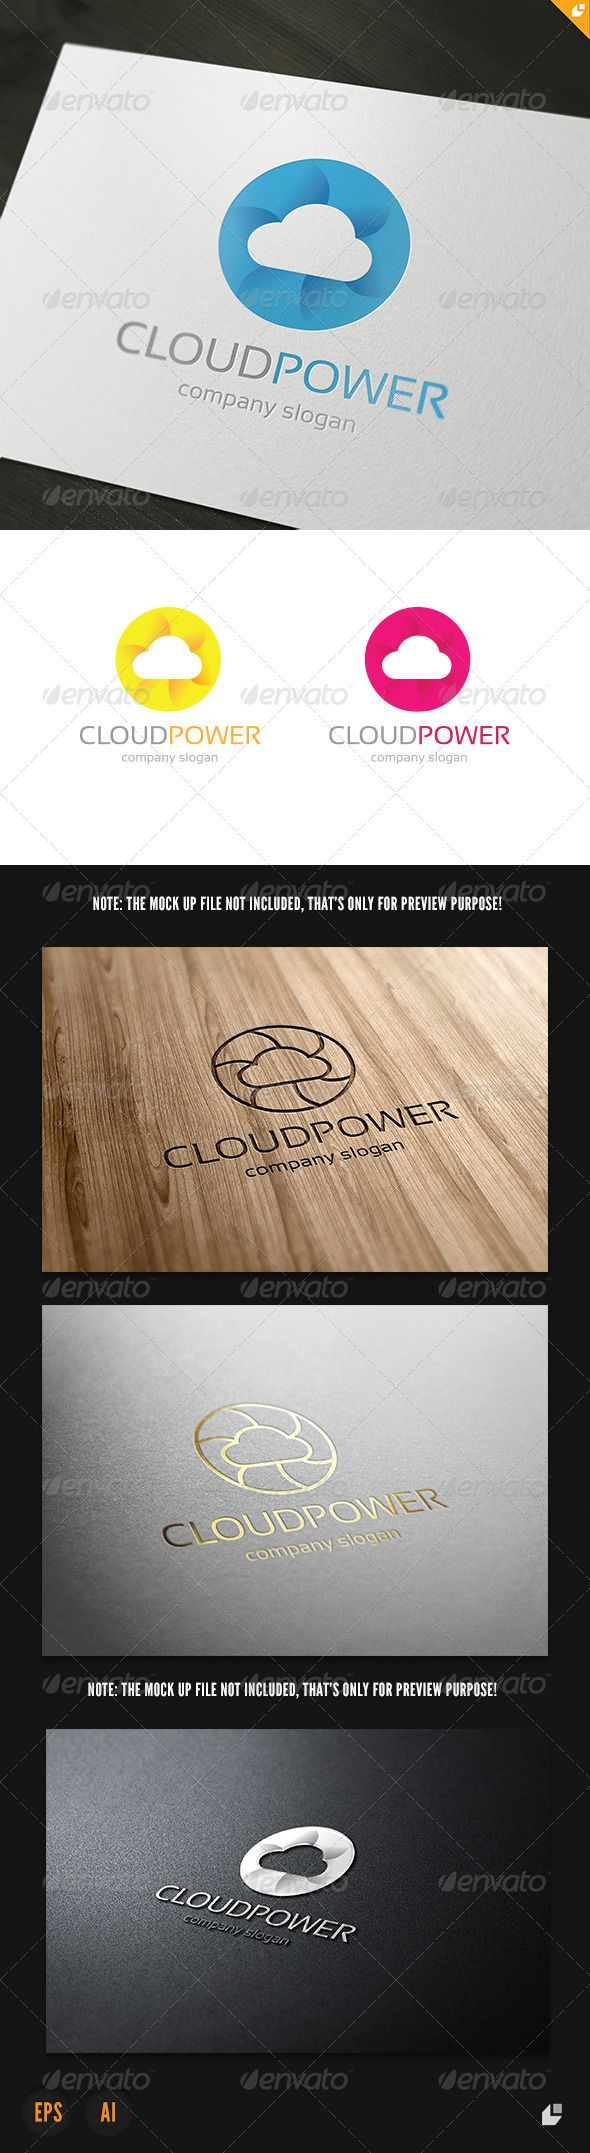 best ideas about logo design software logo cloud power logo